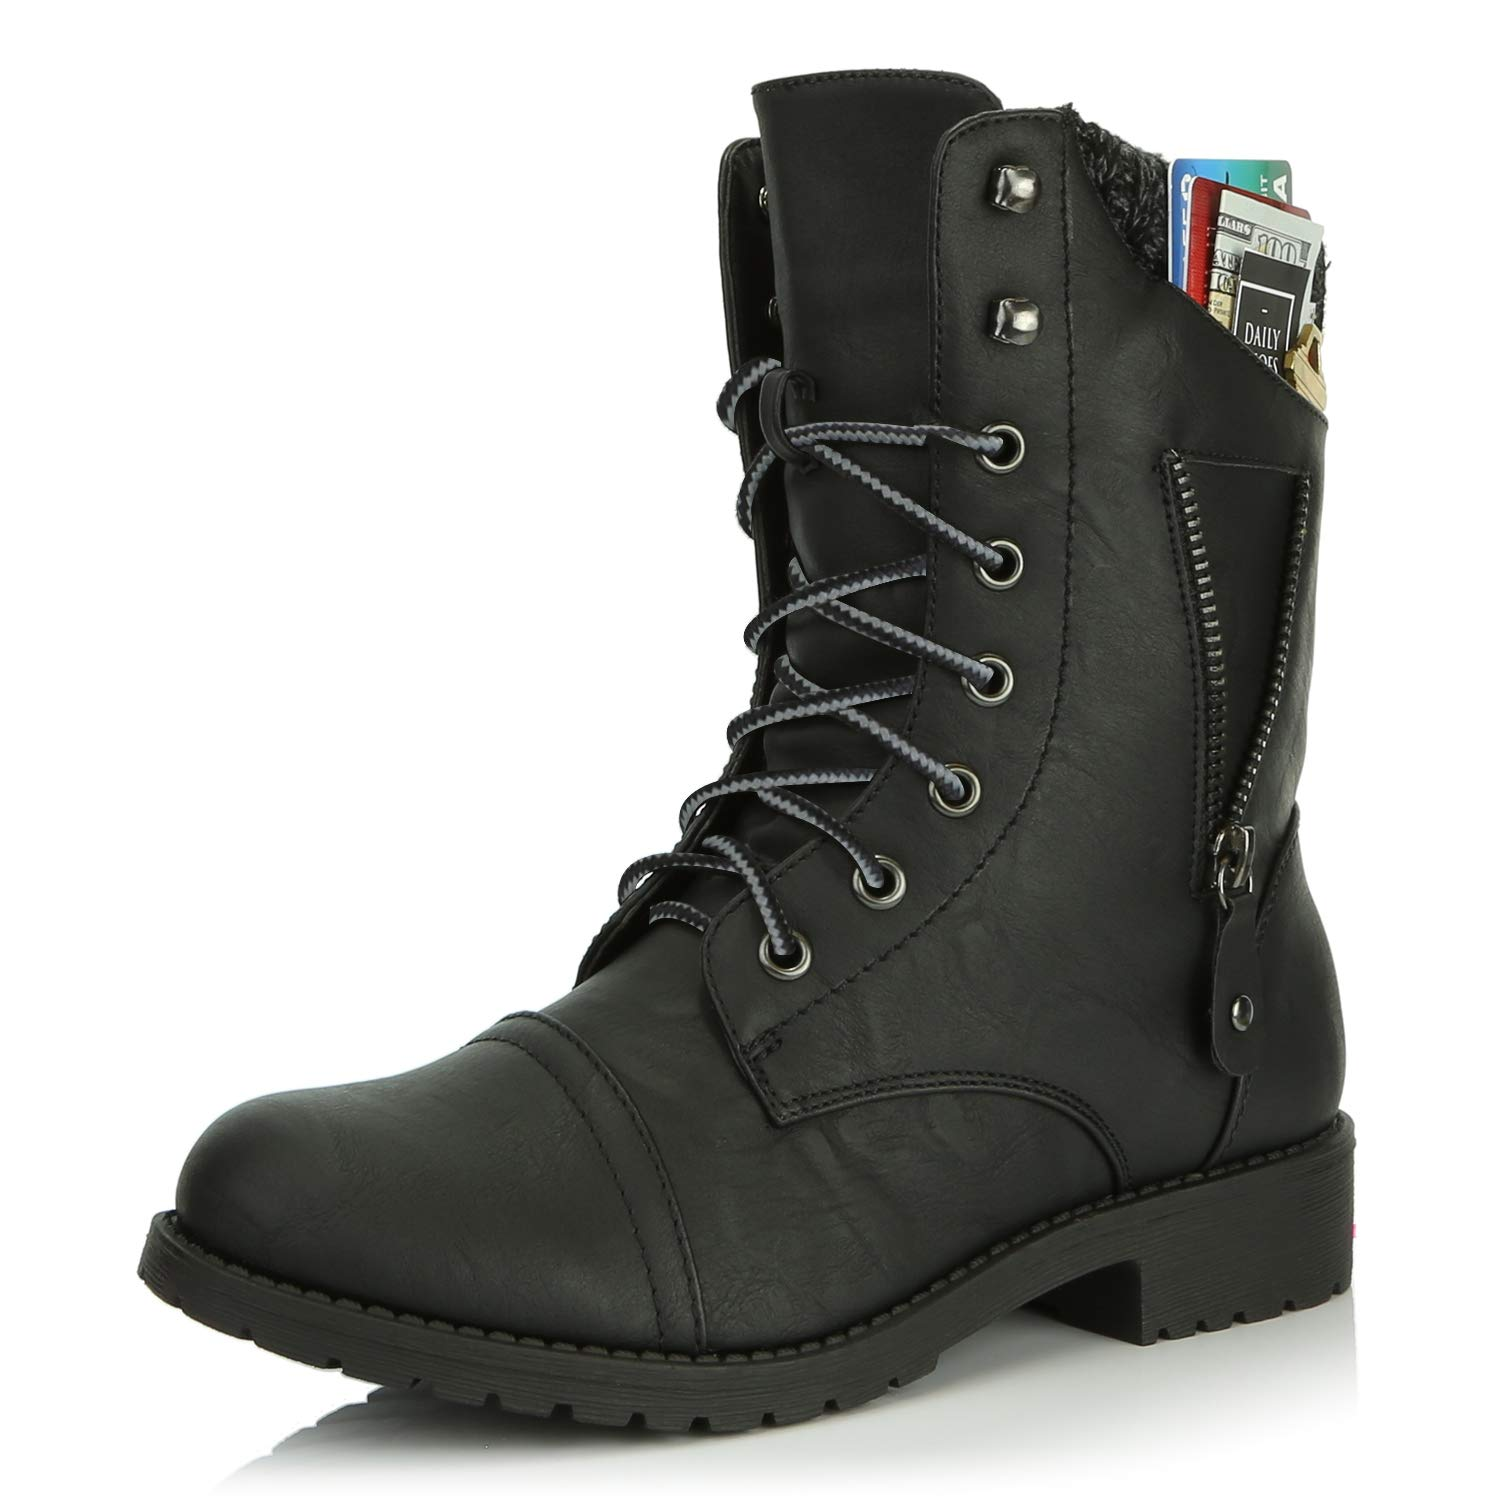 Black Dark Grey DailyShoes Womens Military Lace Up Buckle Combat Boots Zipper Sweater Ankle High Exclusive Credit Card Pocket